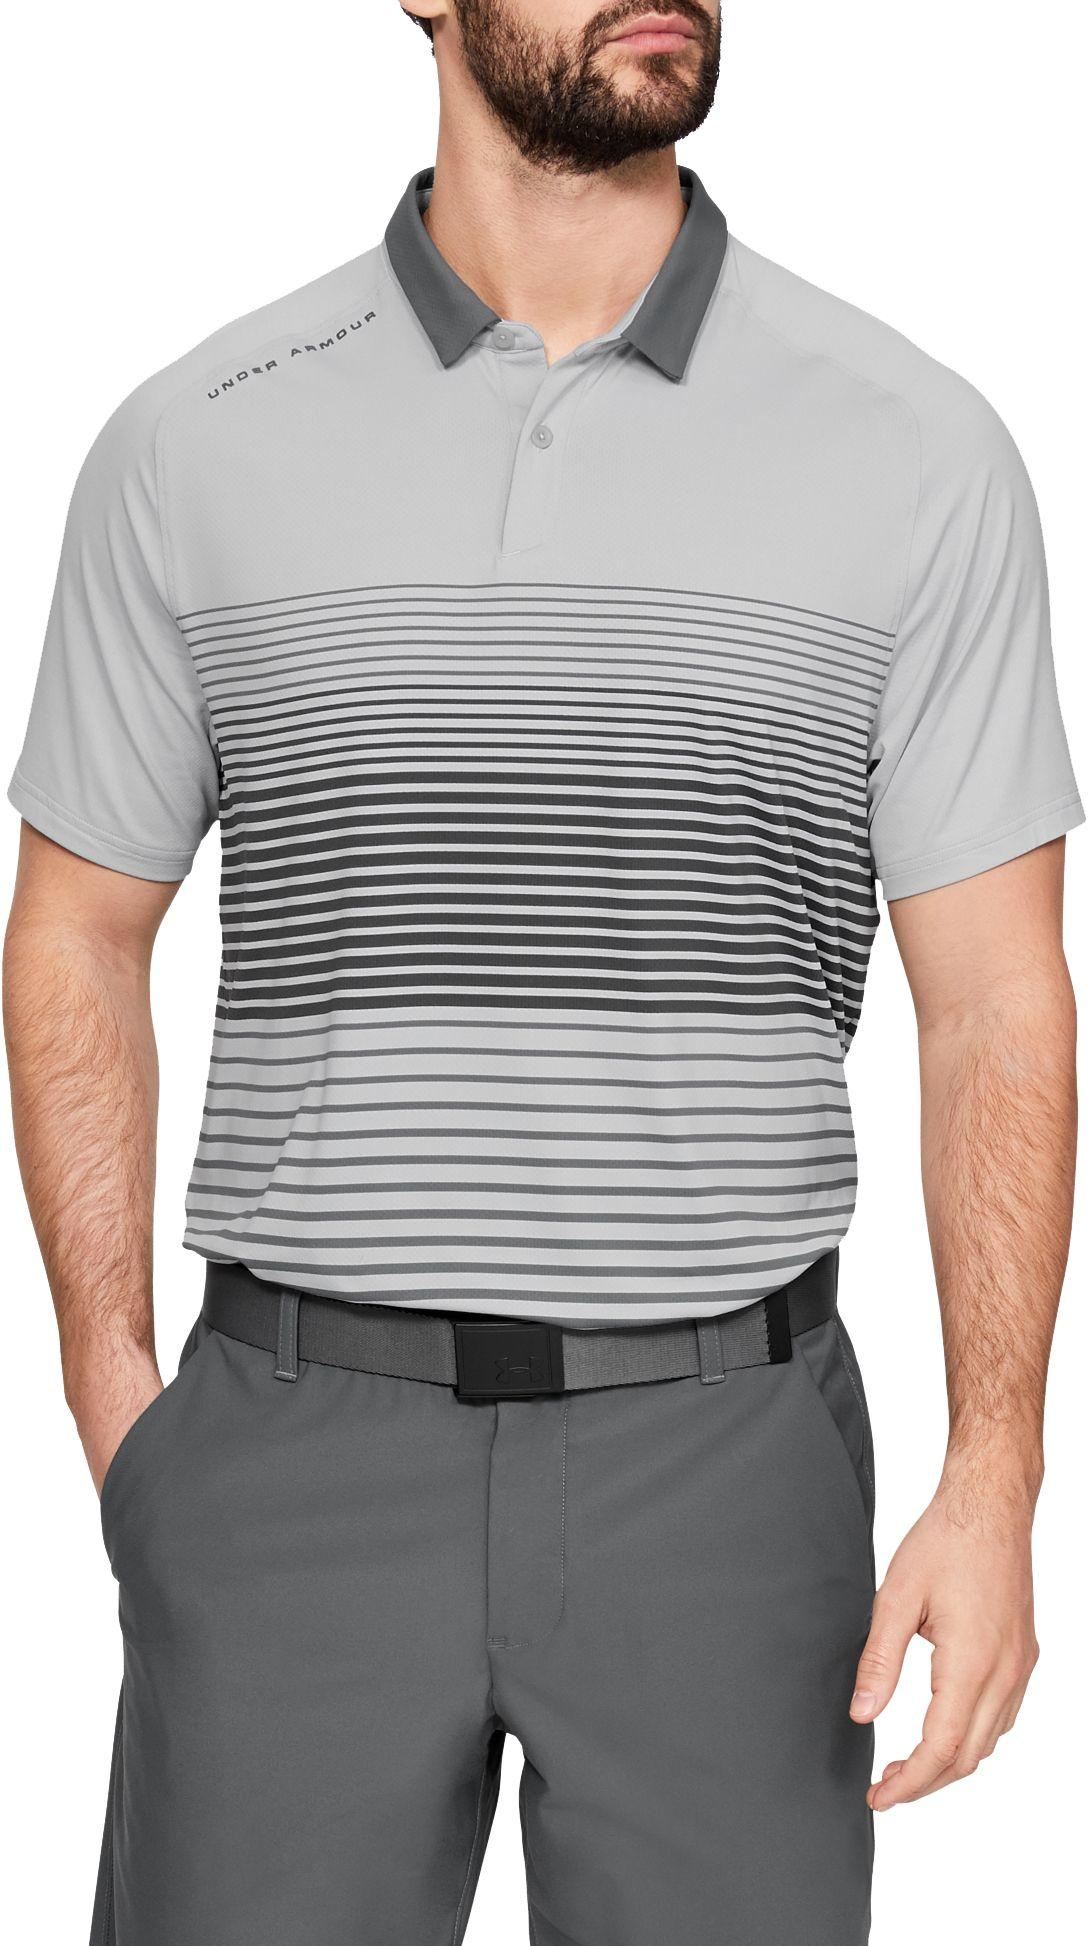 07b4955287e Under Armour - Gray Iso-chill Power Play Golf Polo for Men - Lyst. View  fullscreen